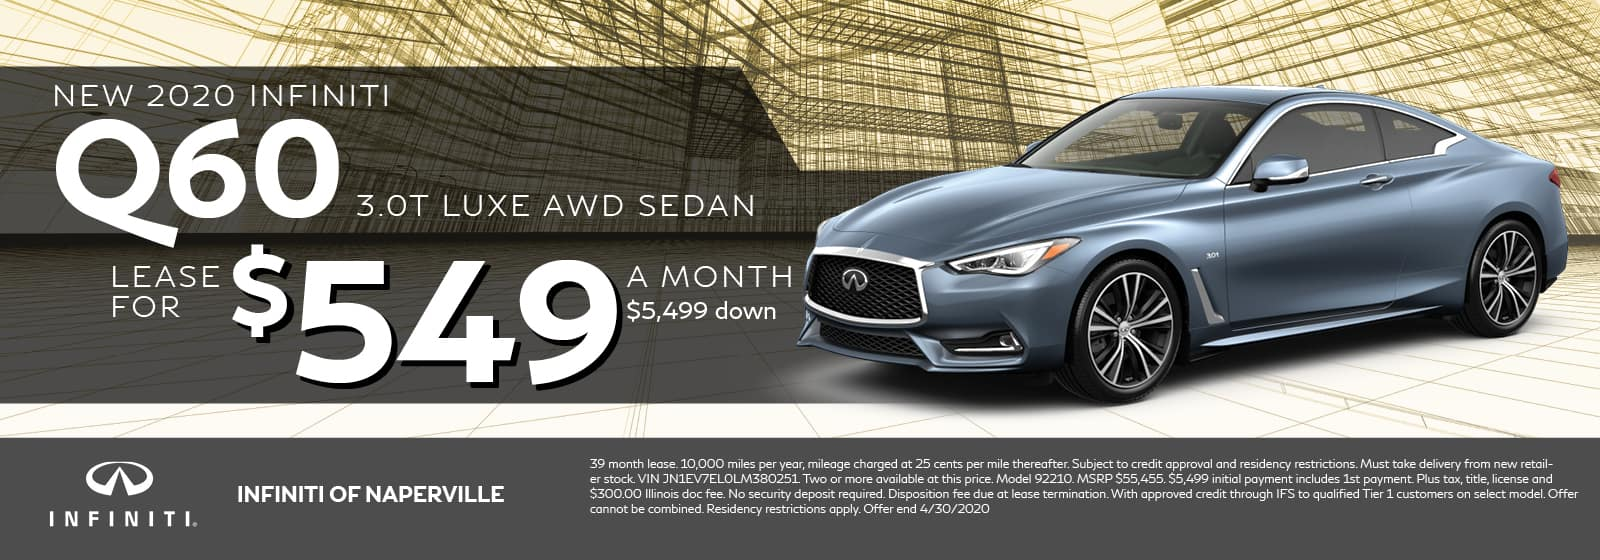 Q60 Lease Offer